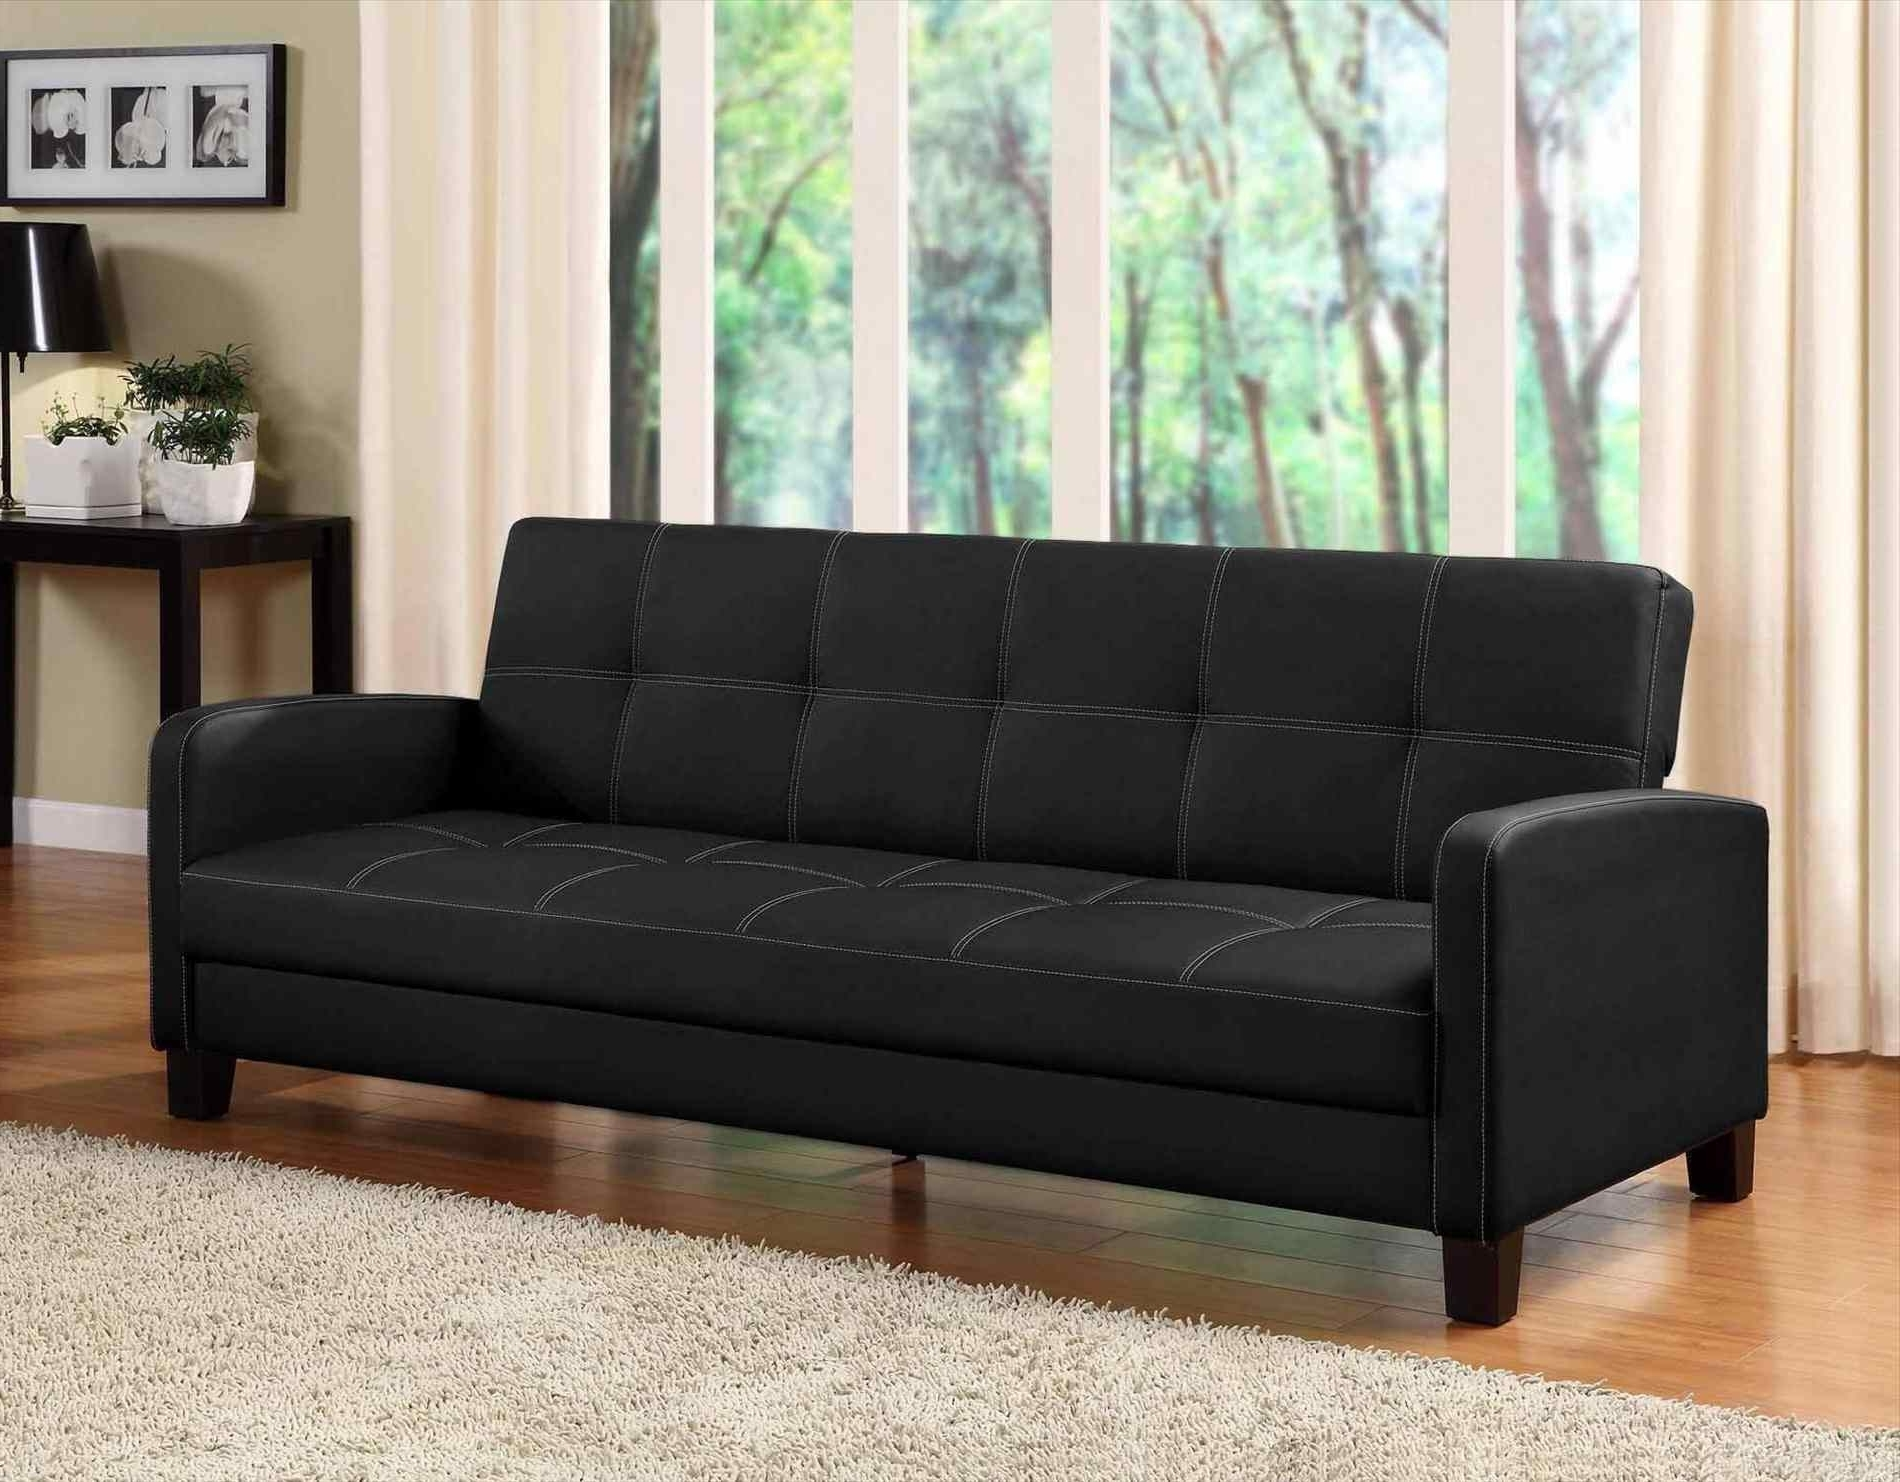 Beau Well Known Sofa : Palmdino Com Sheets Amusing For Decor Terrific Kmart With  With Regard To